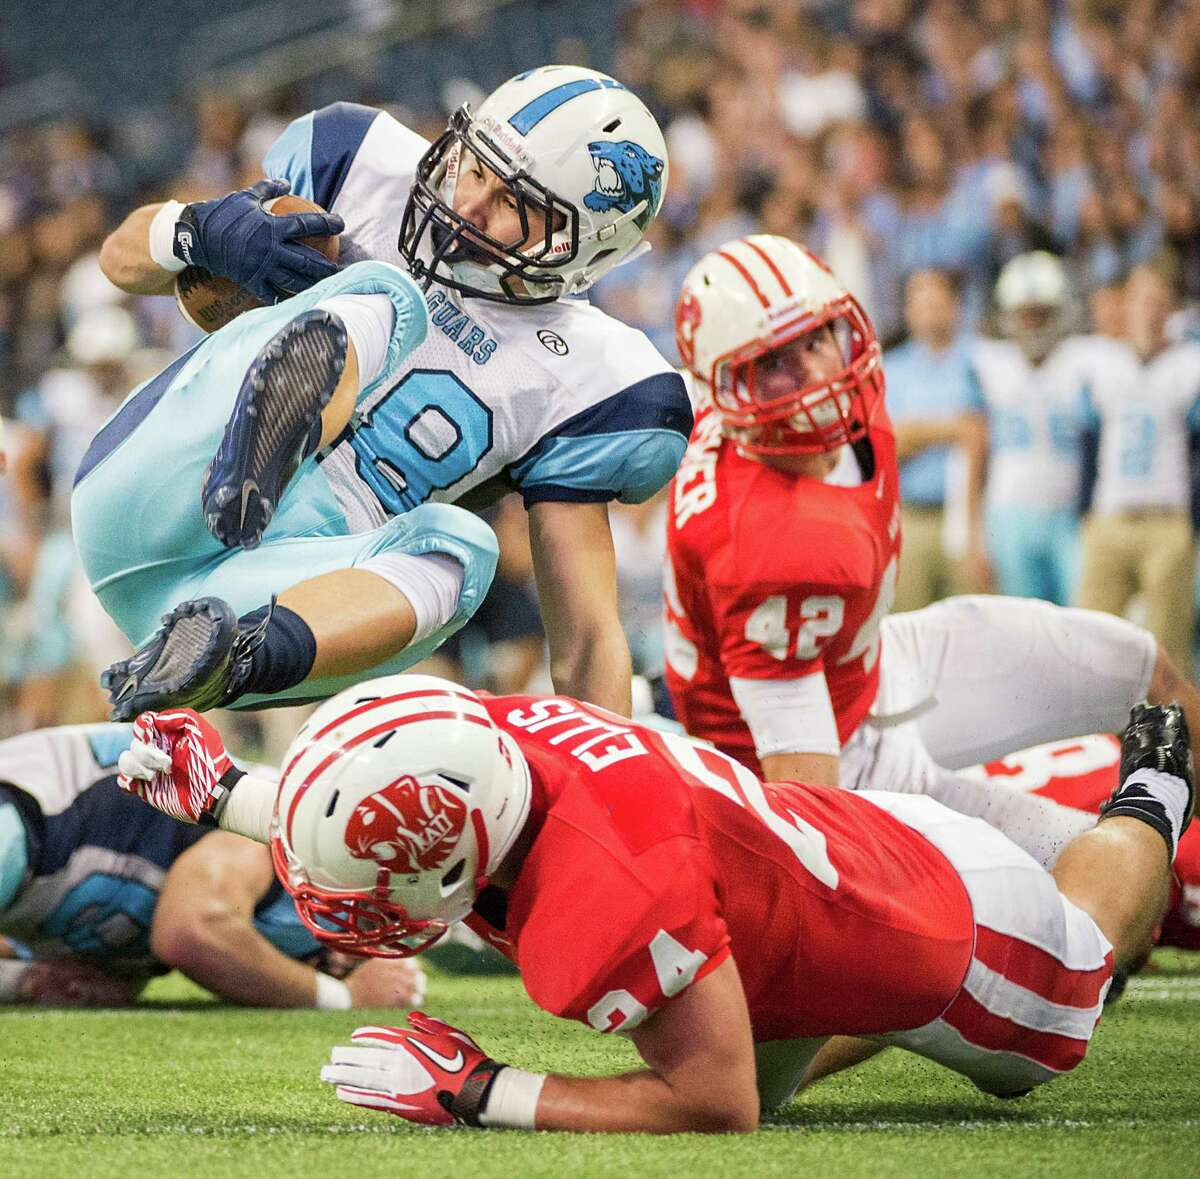 Johnson wide receiver Santana Barrera (28) is knocked off his feet for a loss by Katy linebacker Jason Ellis (24) during the first half of a Class 5A state semifinal high school football playoff game at Reliant Stadium on Saturday, Dec. 14, 2013, in Houston.